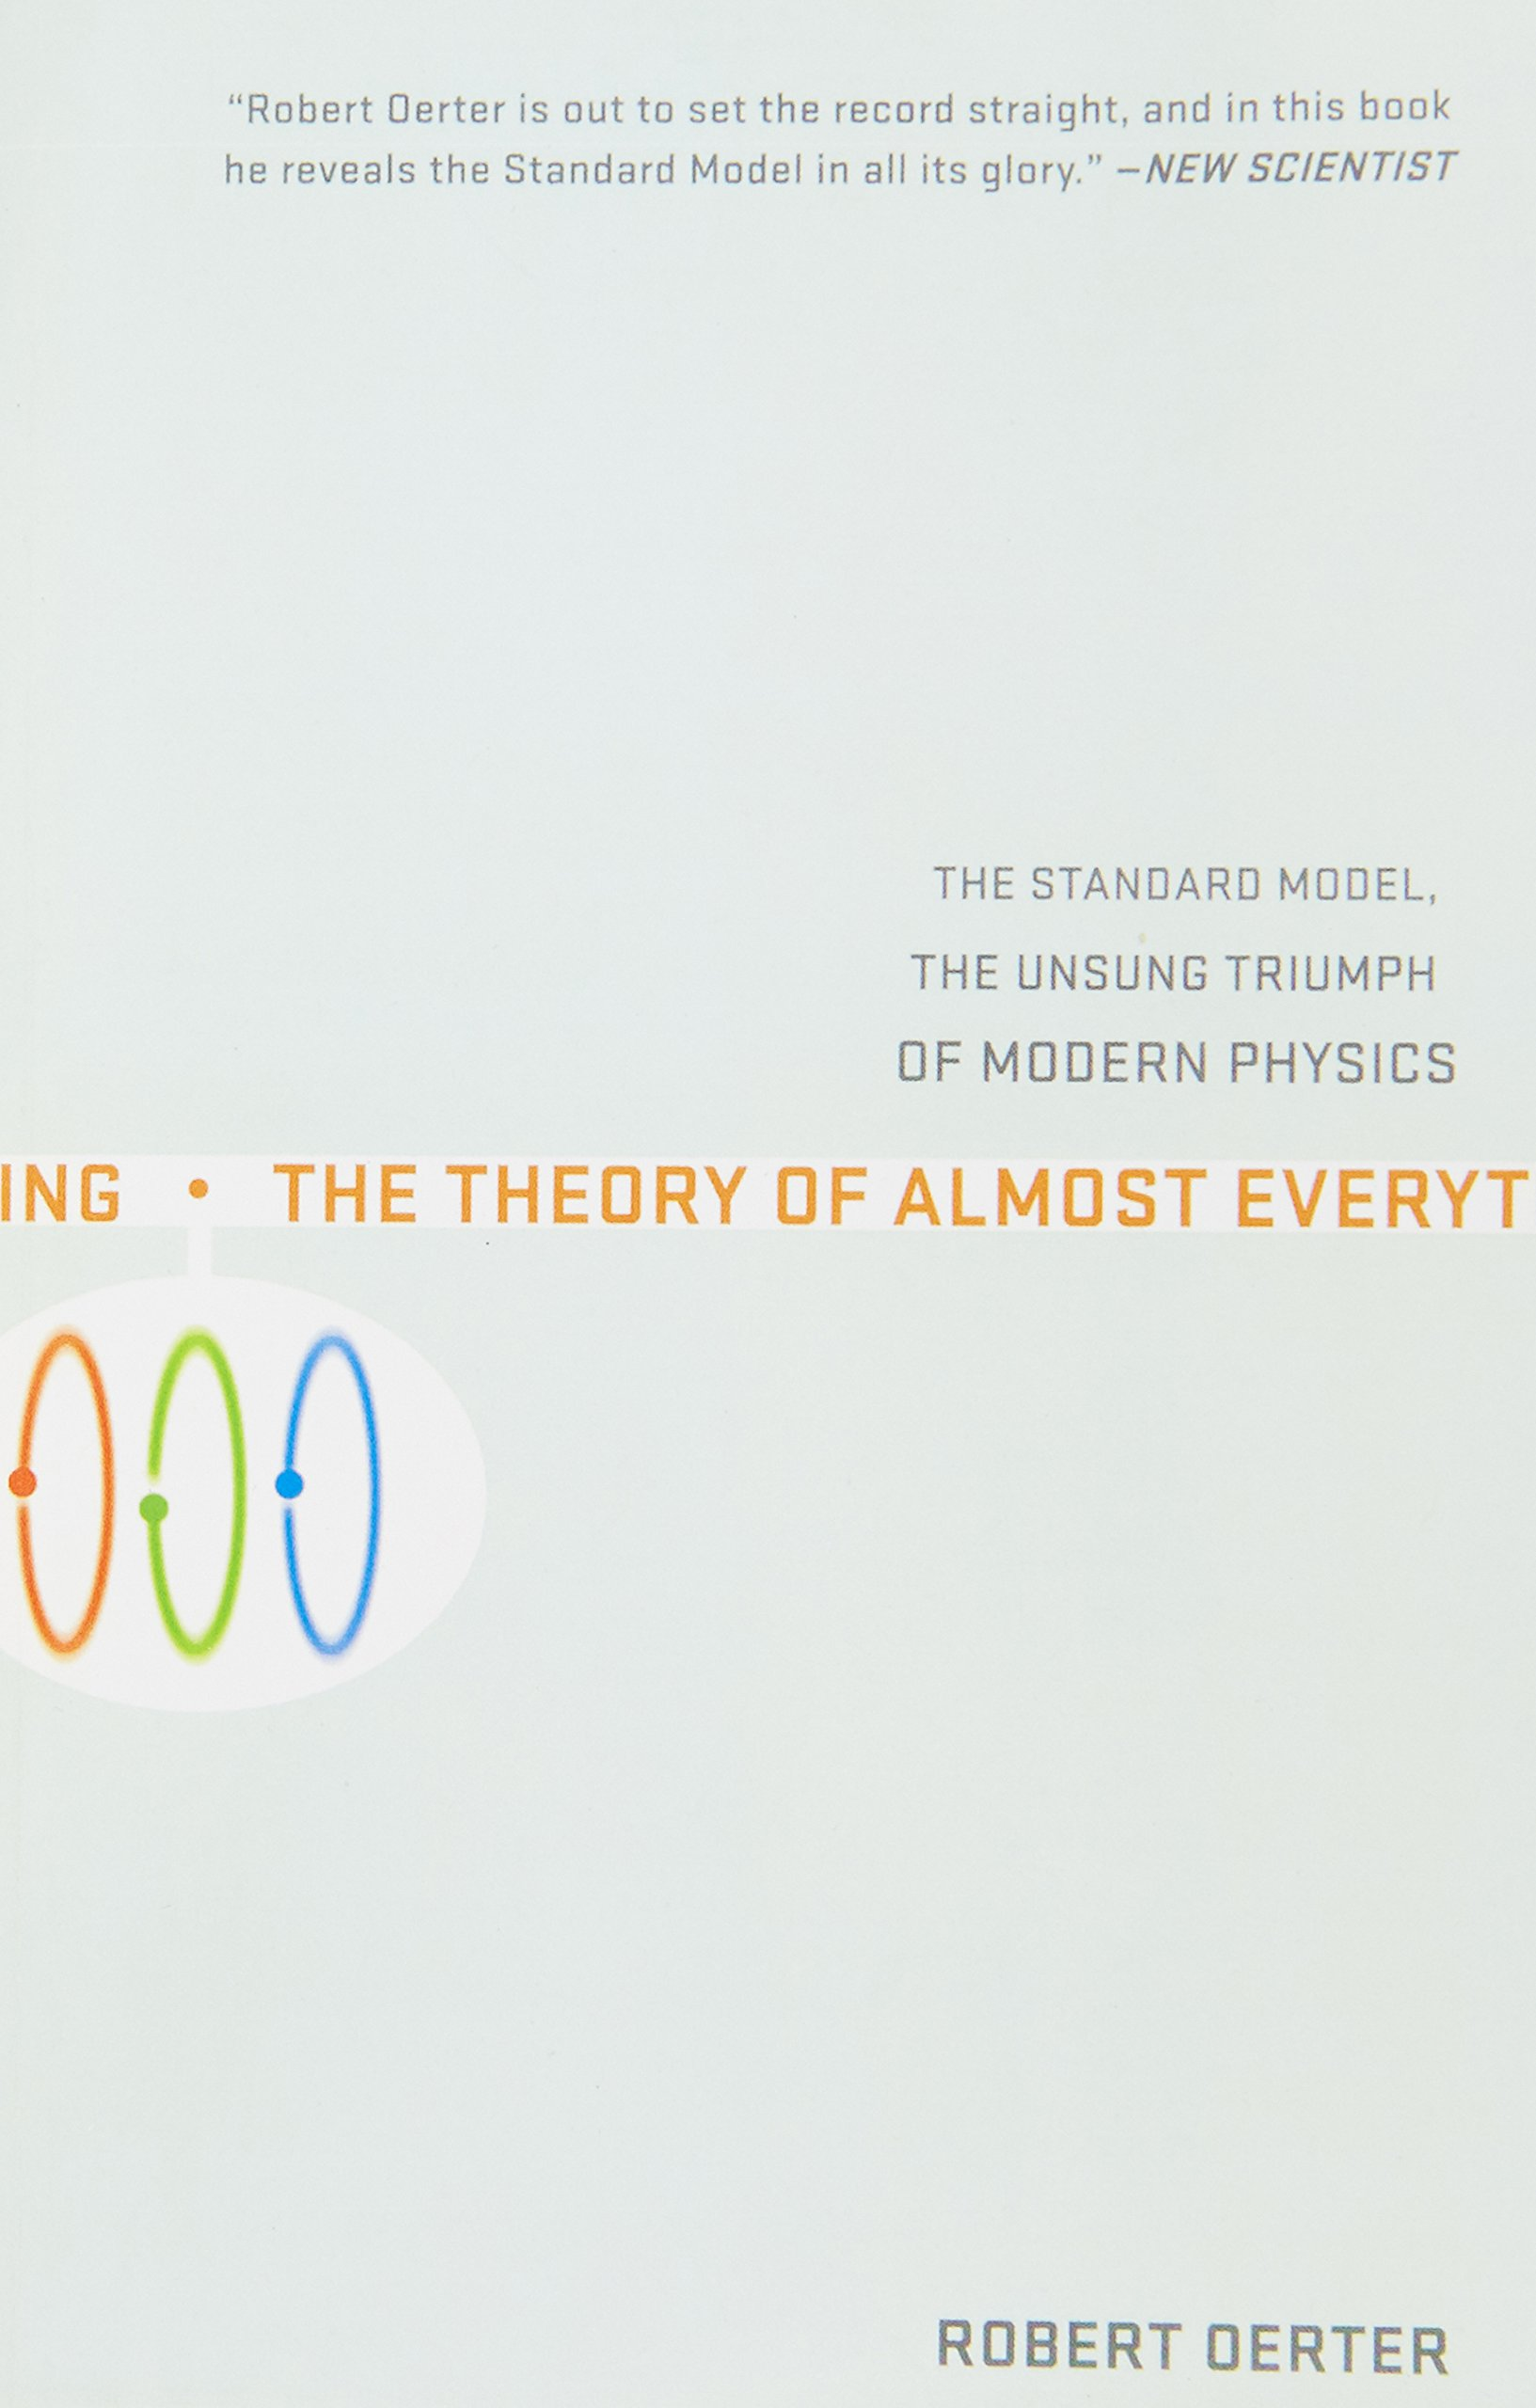 the-theory-of-almost-everything-the-standard-model-the-unsung-triumph-of-modern-physics